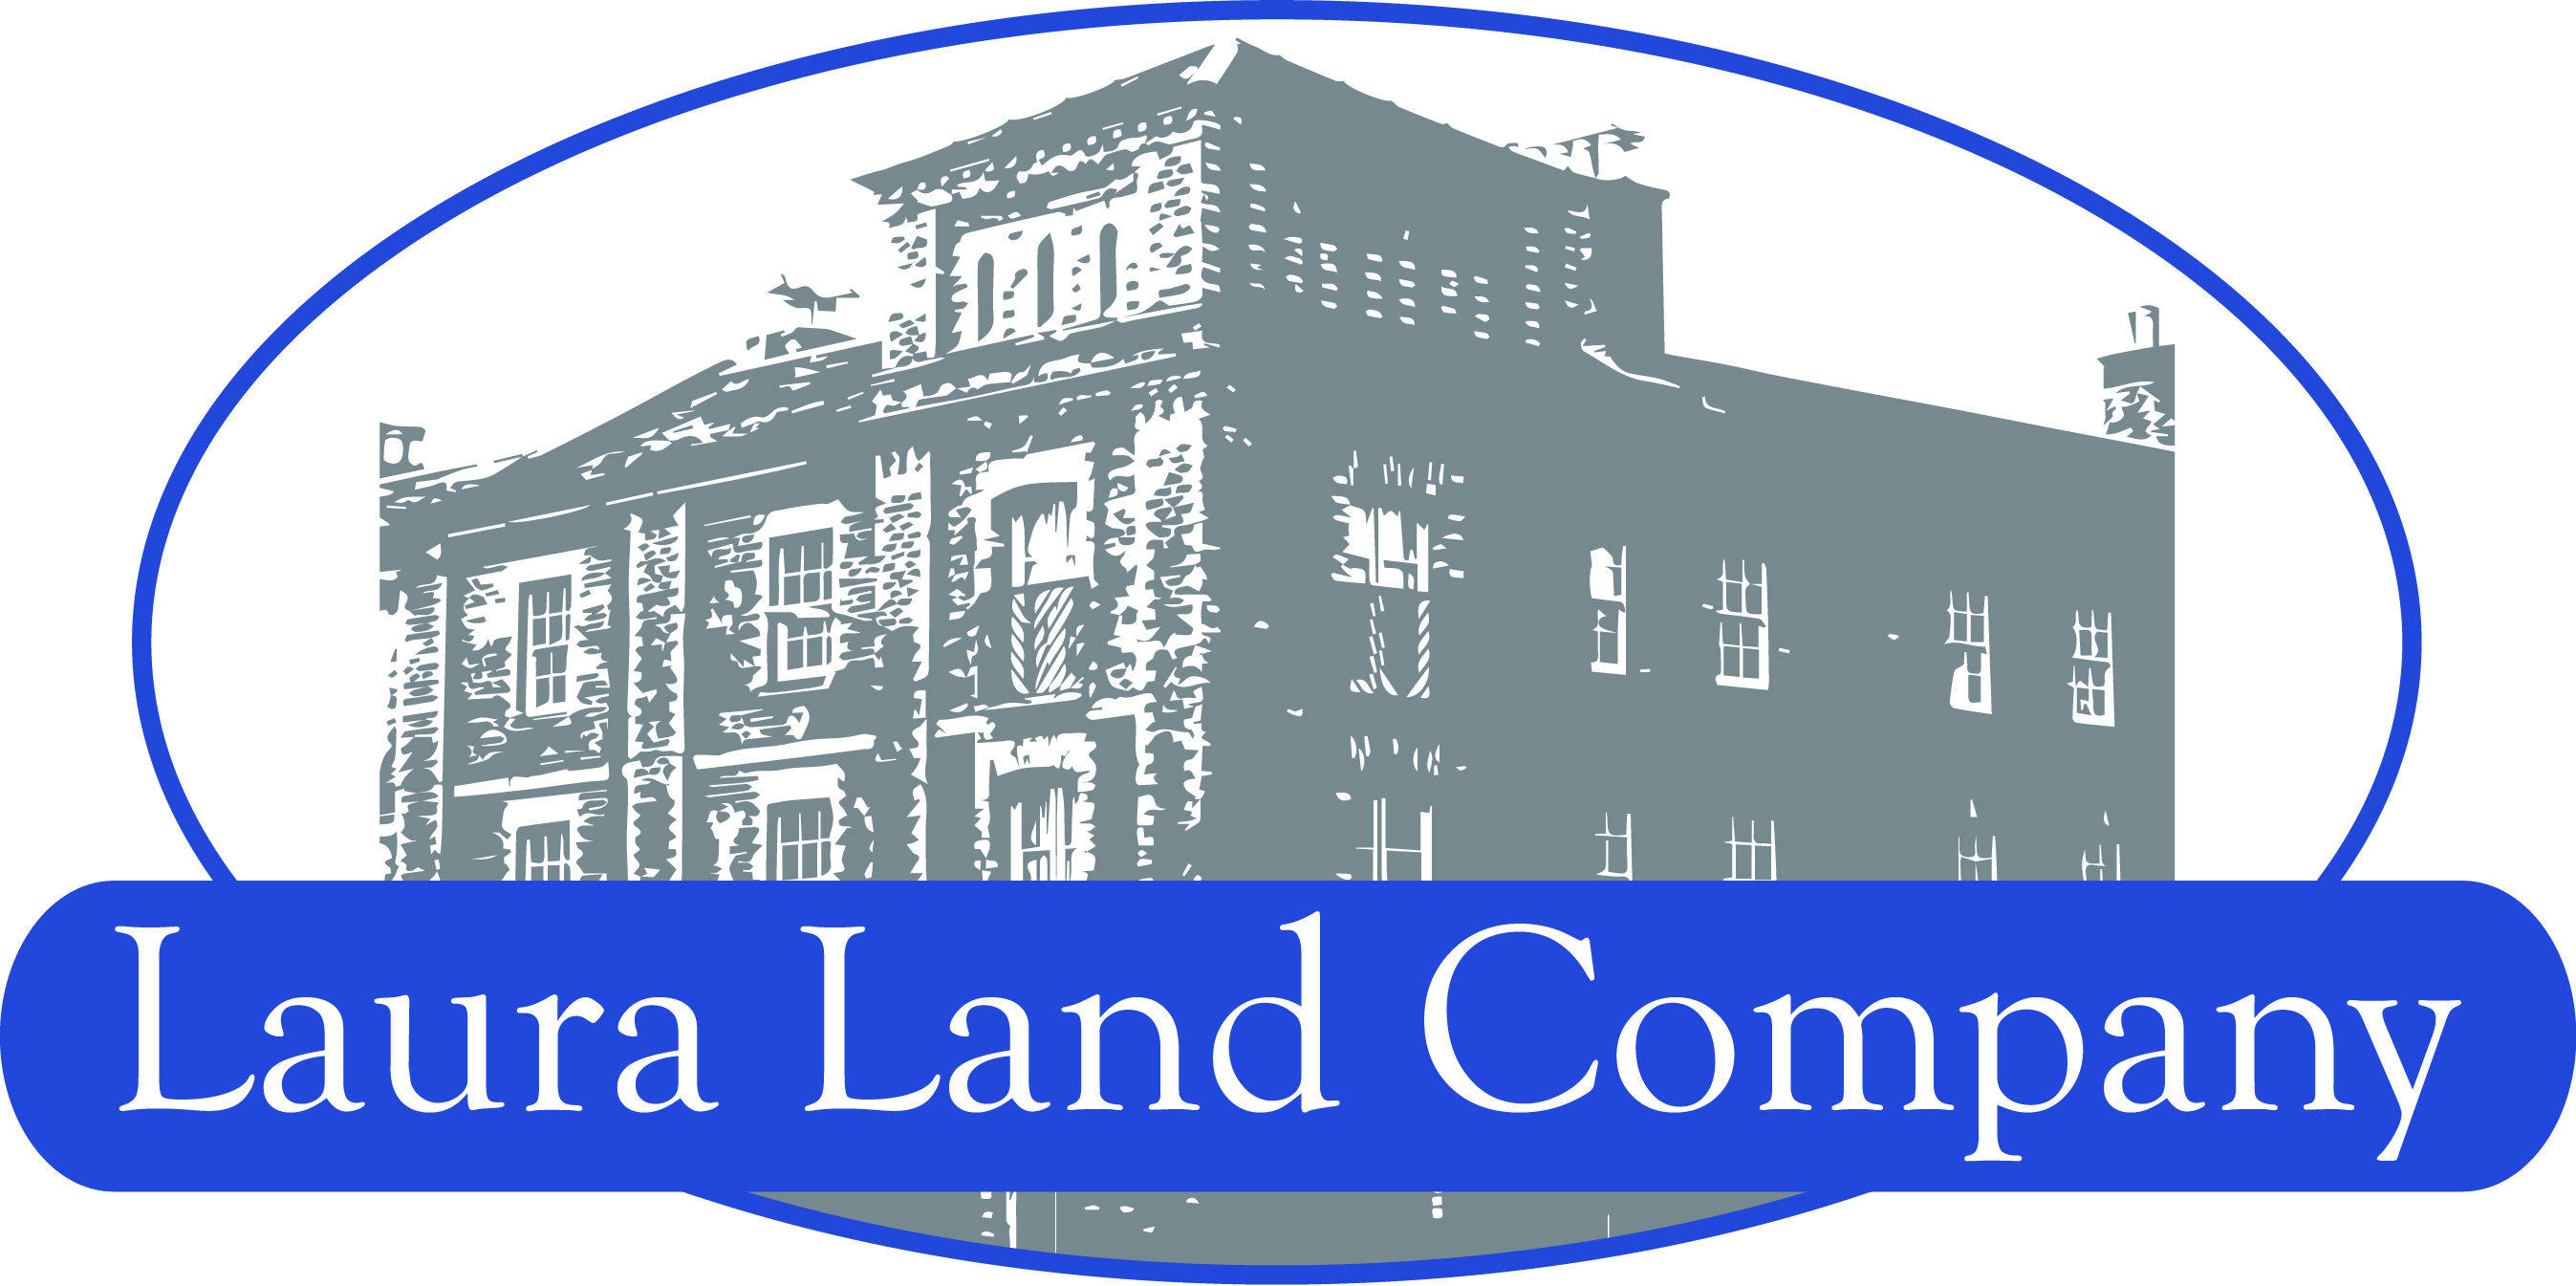 Laura Land Company